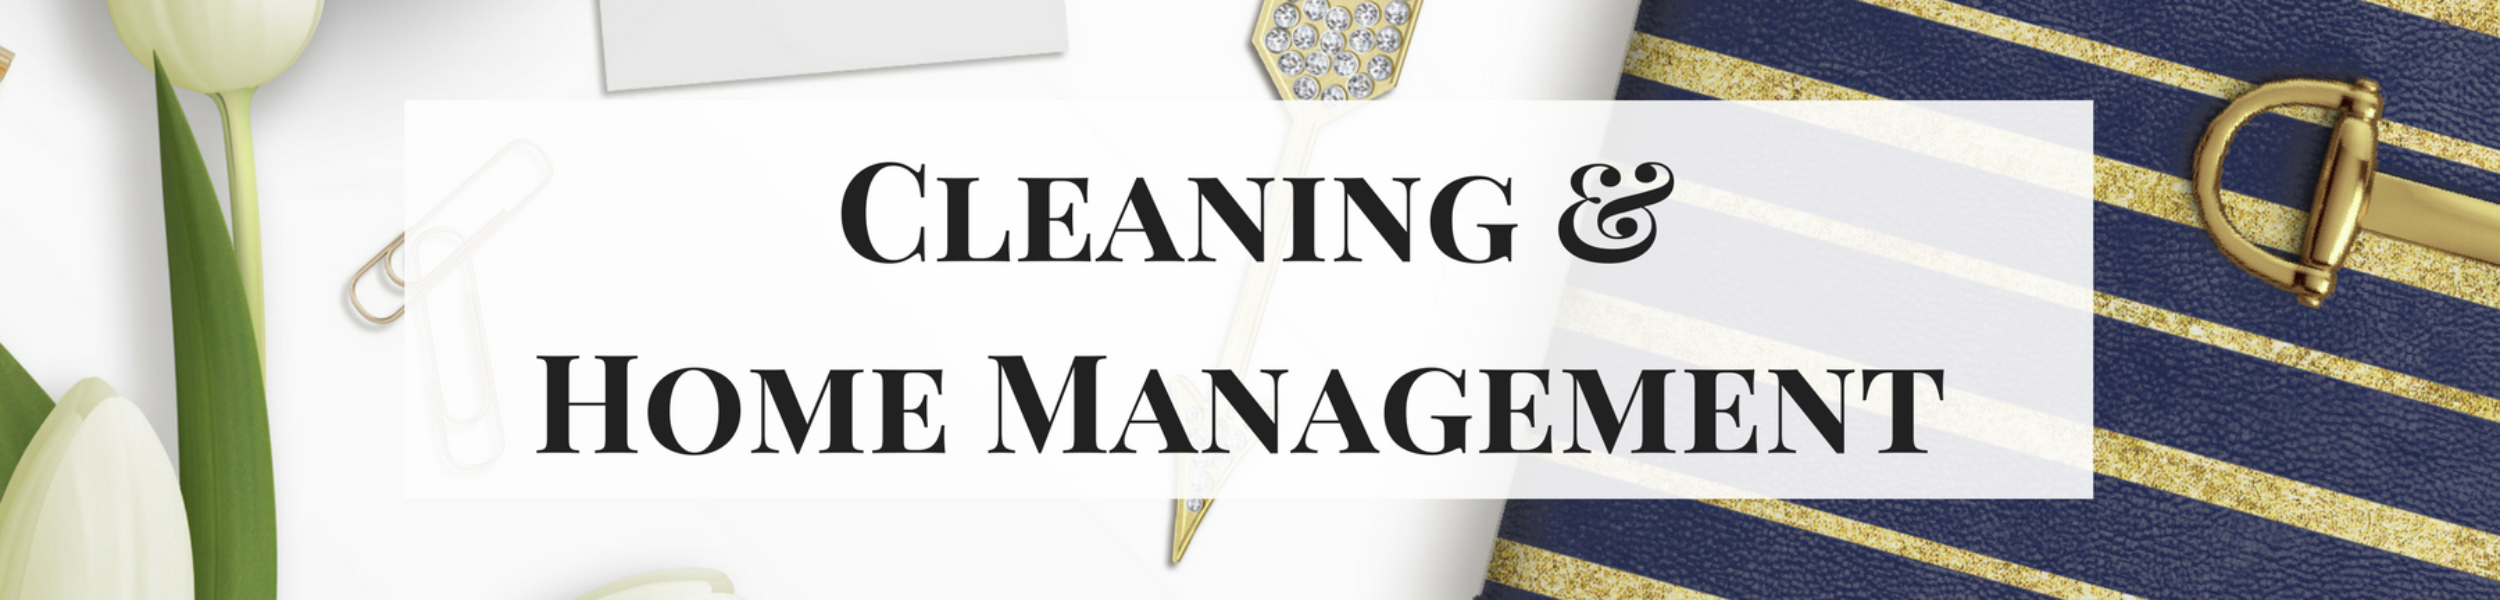 Cleaning & Home Management